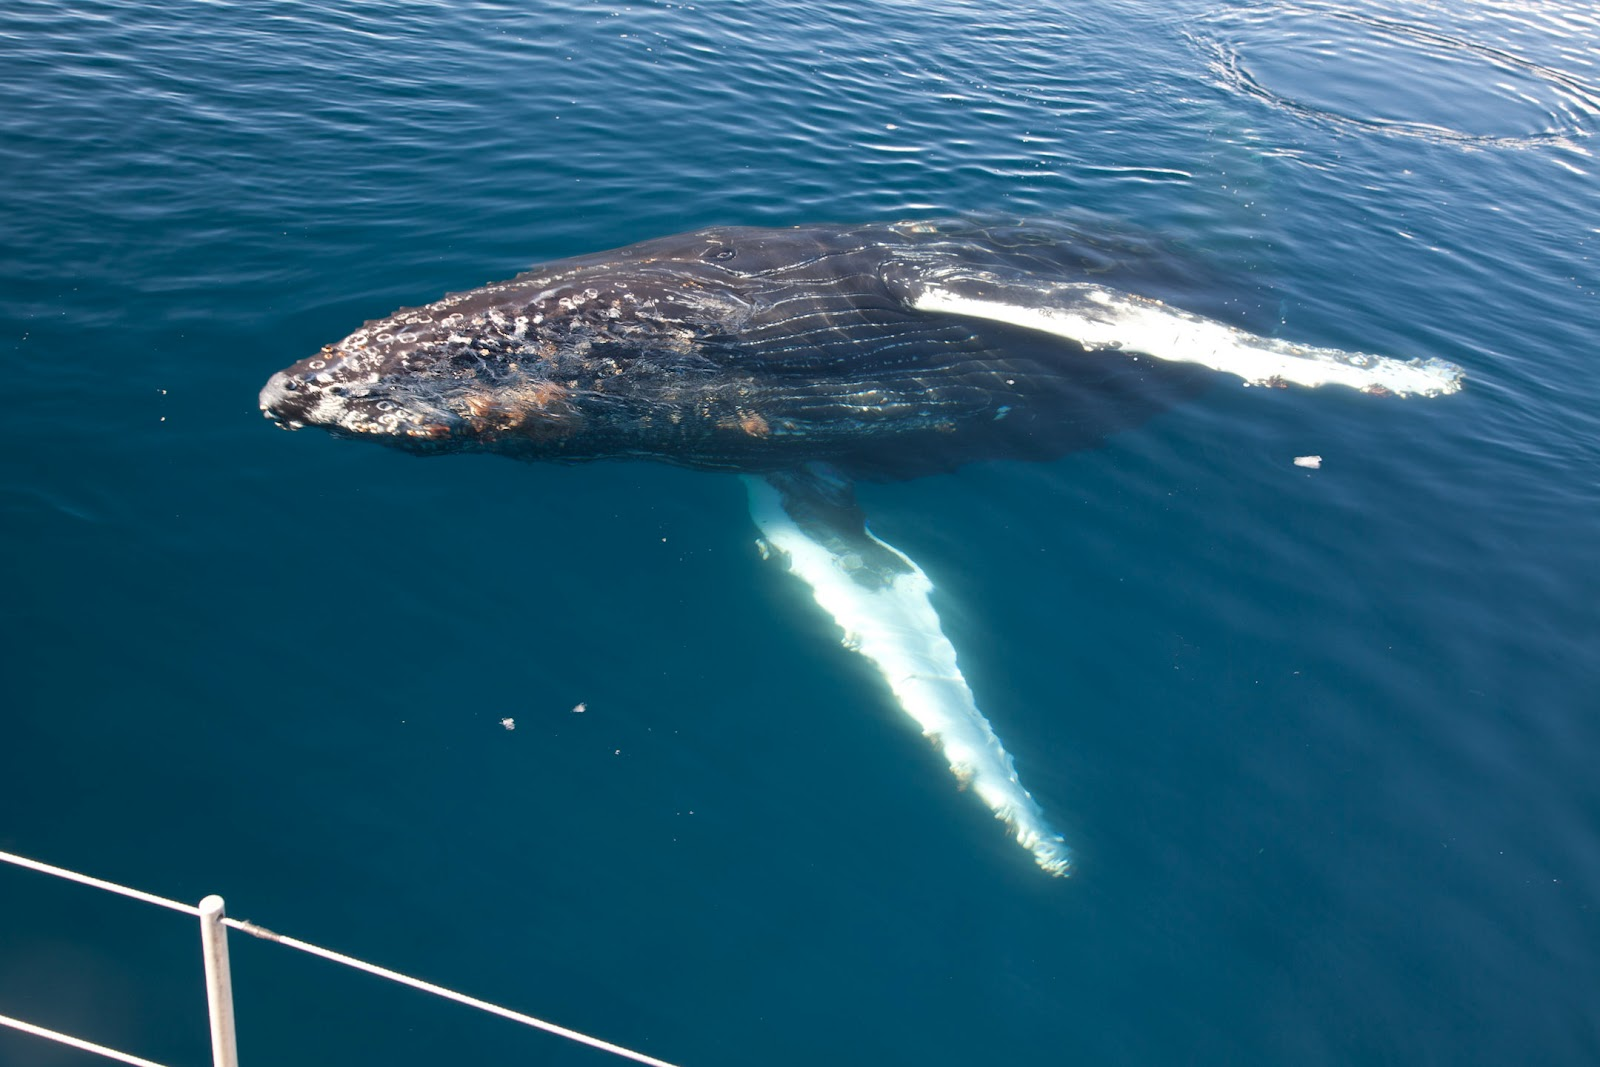 Blue Whale Under Boat